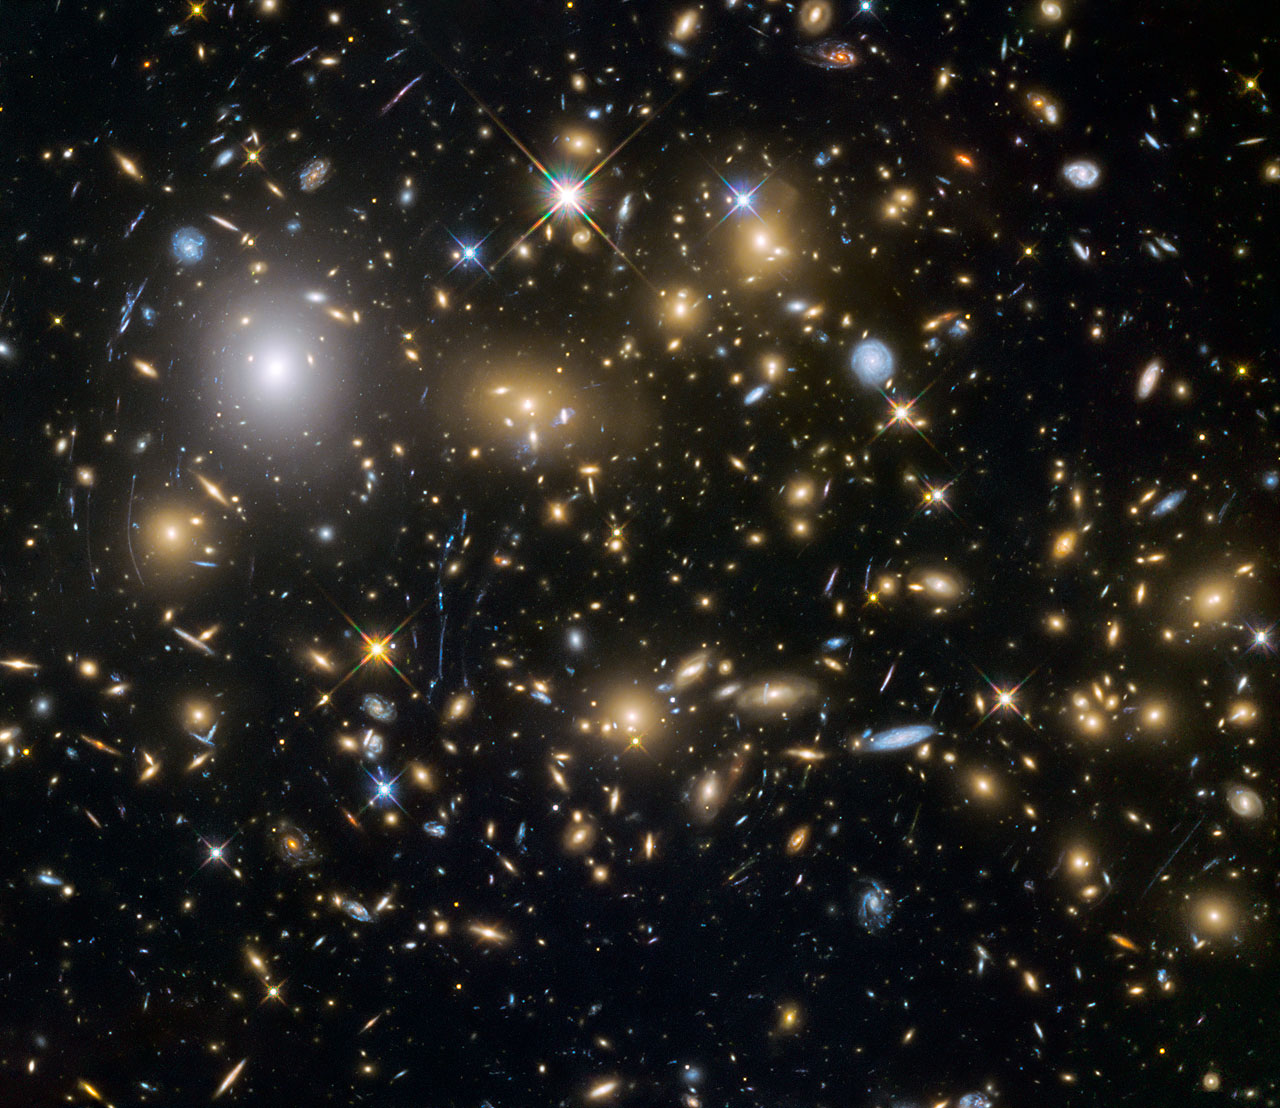 This image from the NASA/ESA Hubble Space Telescope shows the galaxy cluster MACSJ0717.5+3745. This is one of six being studied by the Hubble Frontier Fields programme, which together have produced the deepest images of gravitational lensing ever made. Due to the huge mass of the cluster it is bending the light of background objects, acting as a magnifying lens. It is one of the most massive galaxy clusters known, and it is also the largest known gravitational lens. Of all of the galaxy clusters known and measured, MACS J0717 lenses the largest area of the sky.